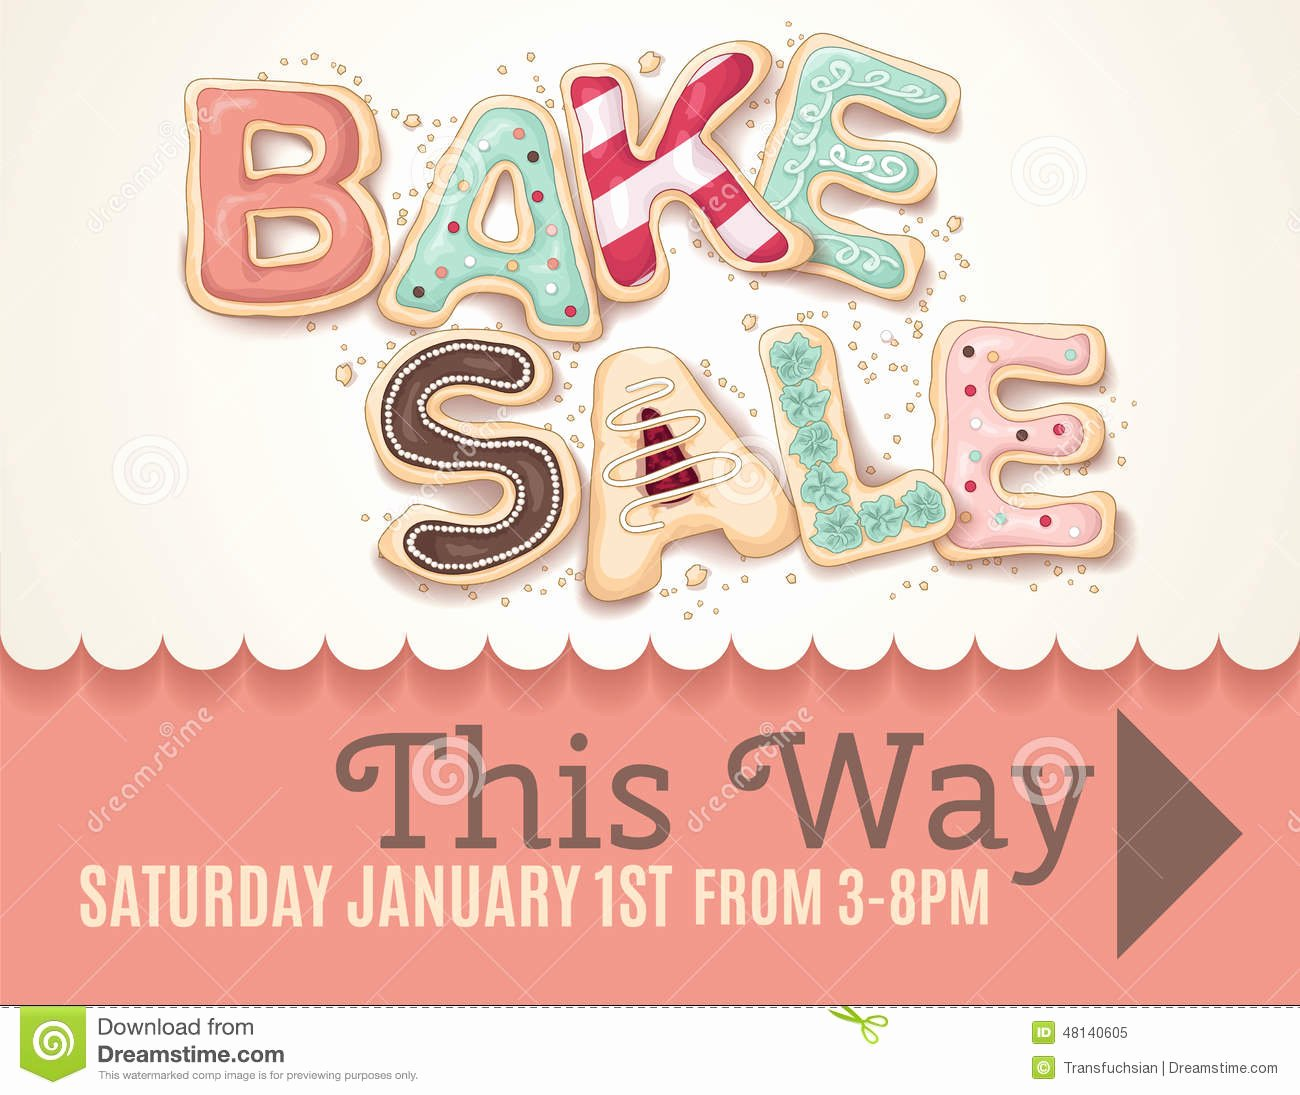 Bake Sale Flyer Template Free Luxury Bake Sale Sign Template Stock Vector Illustration Of